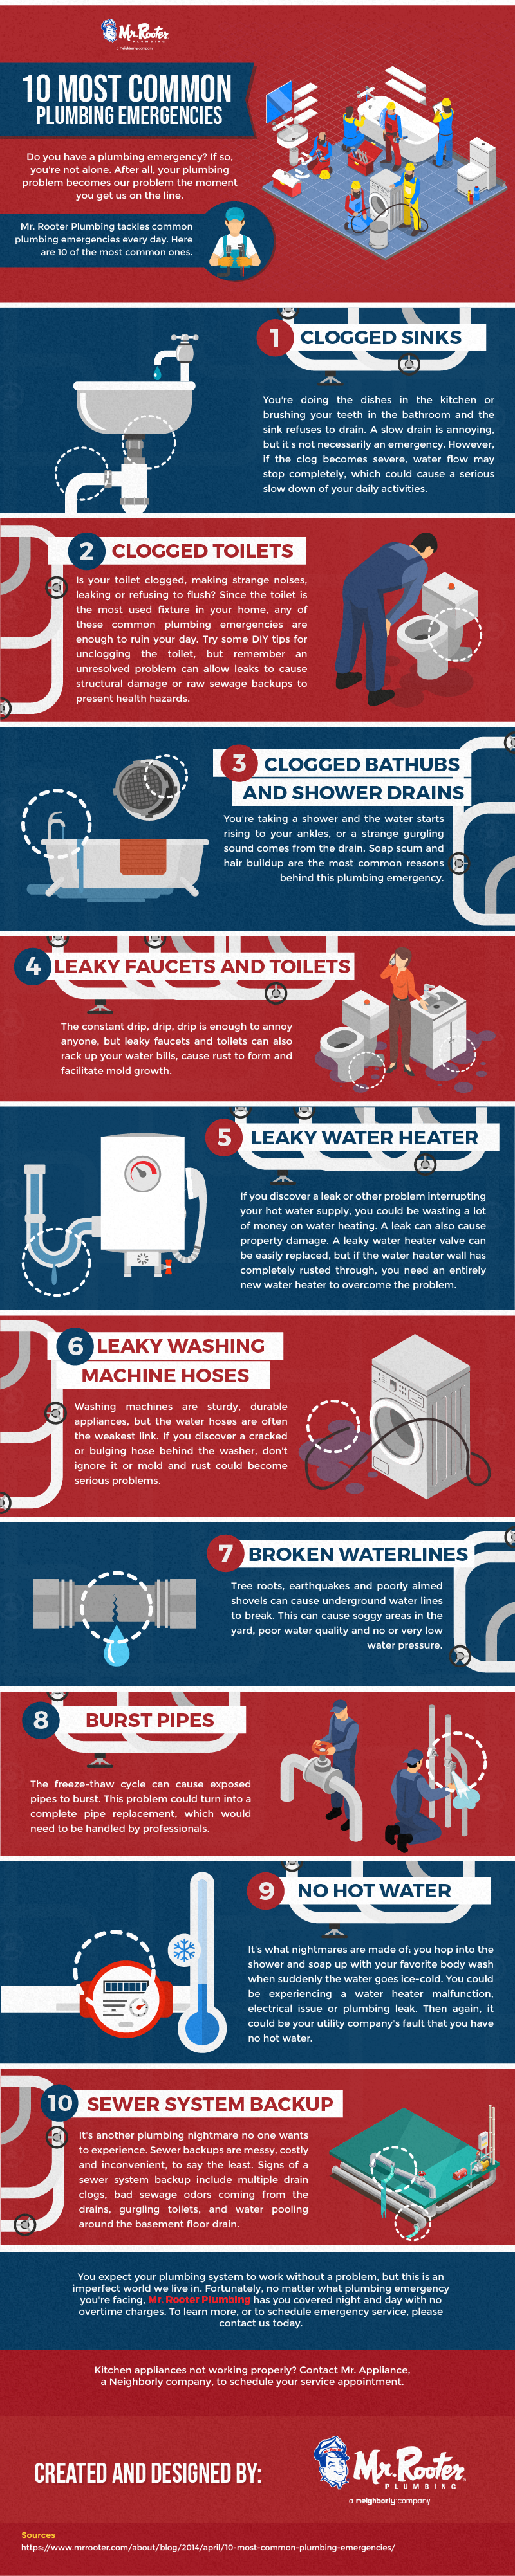 10-Most-Common-Plumbing-Emergencies-01